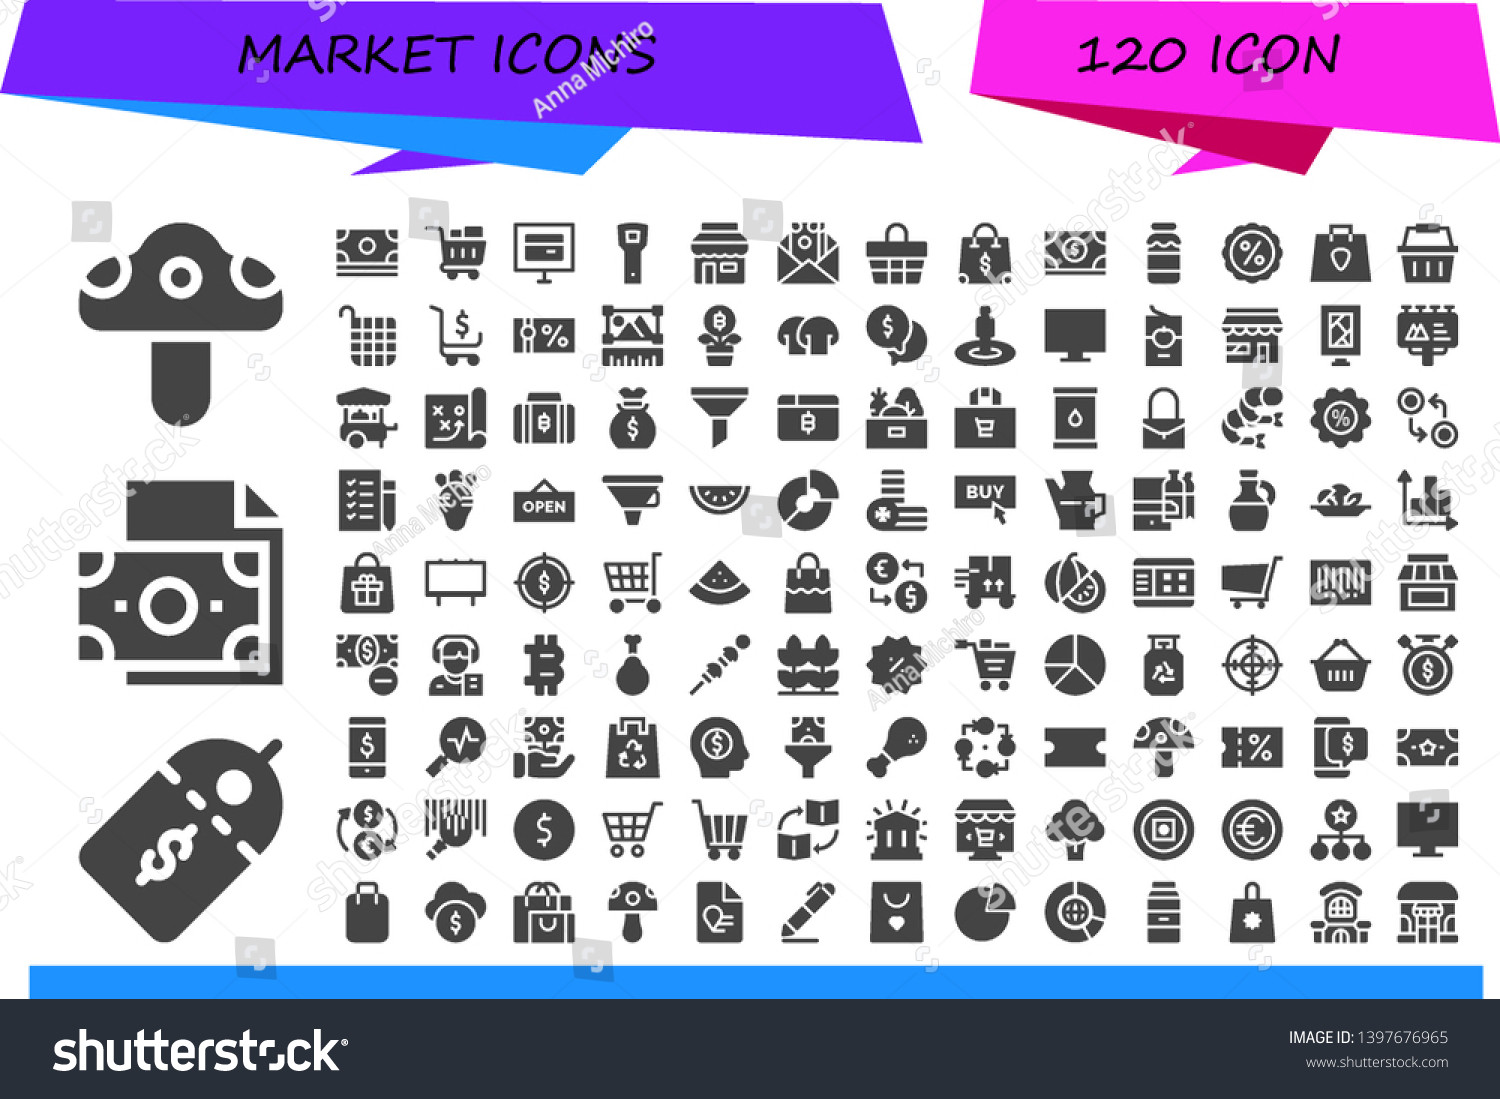 Market Icon Set 120 Filled Market Stock Vector (Royalty Free